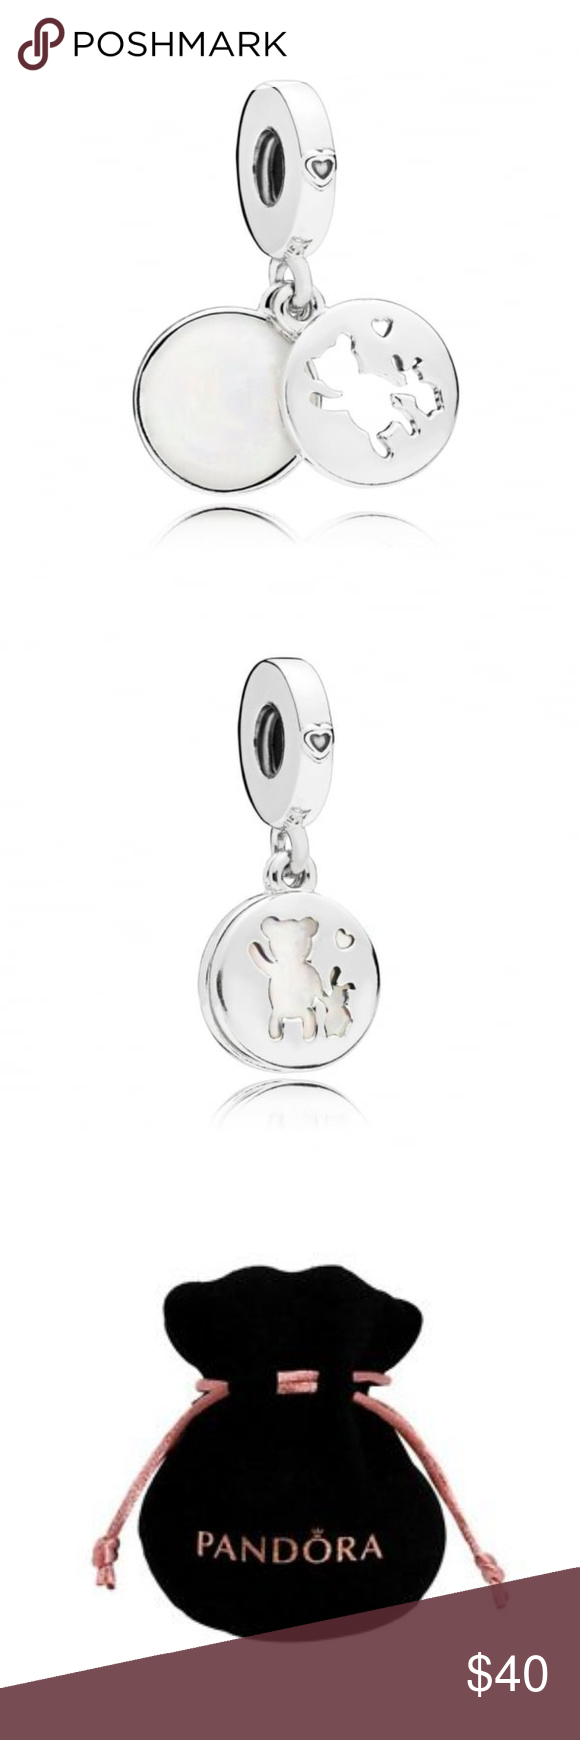 2bd9e90e3 Pandora Perfect Pals Char NEW This charm is special for that precious  friendship with a silhouette